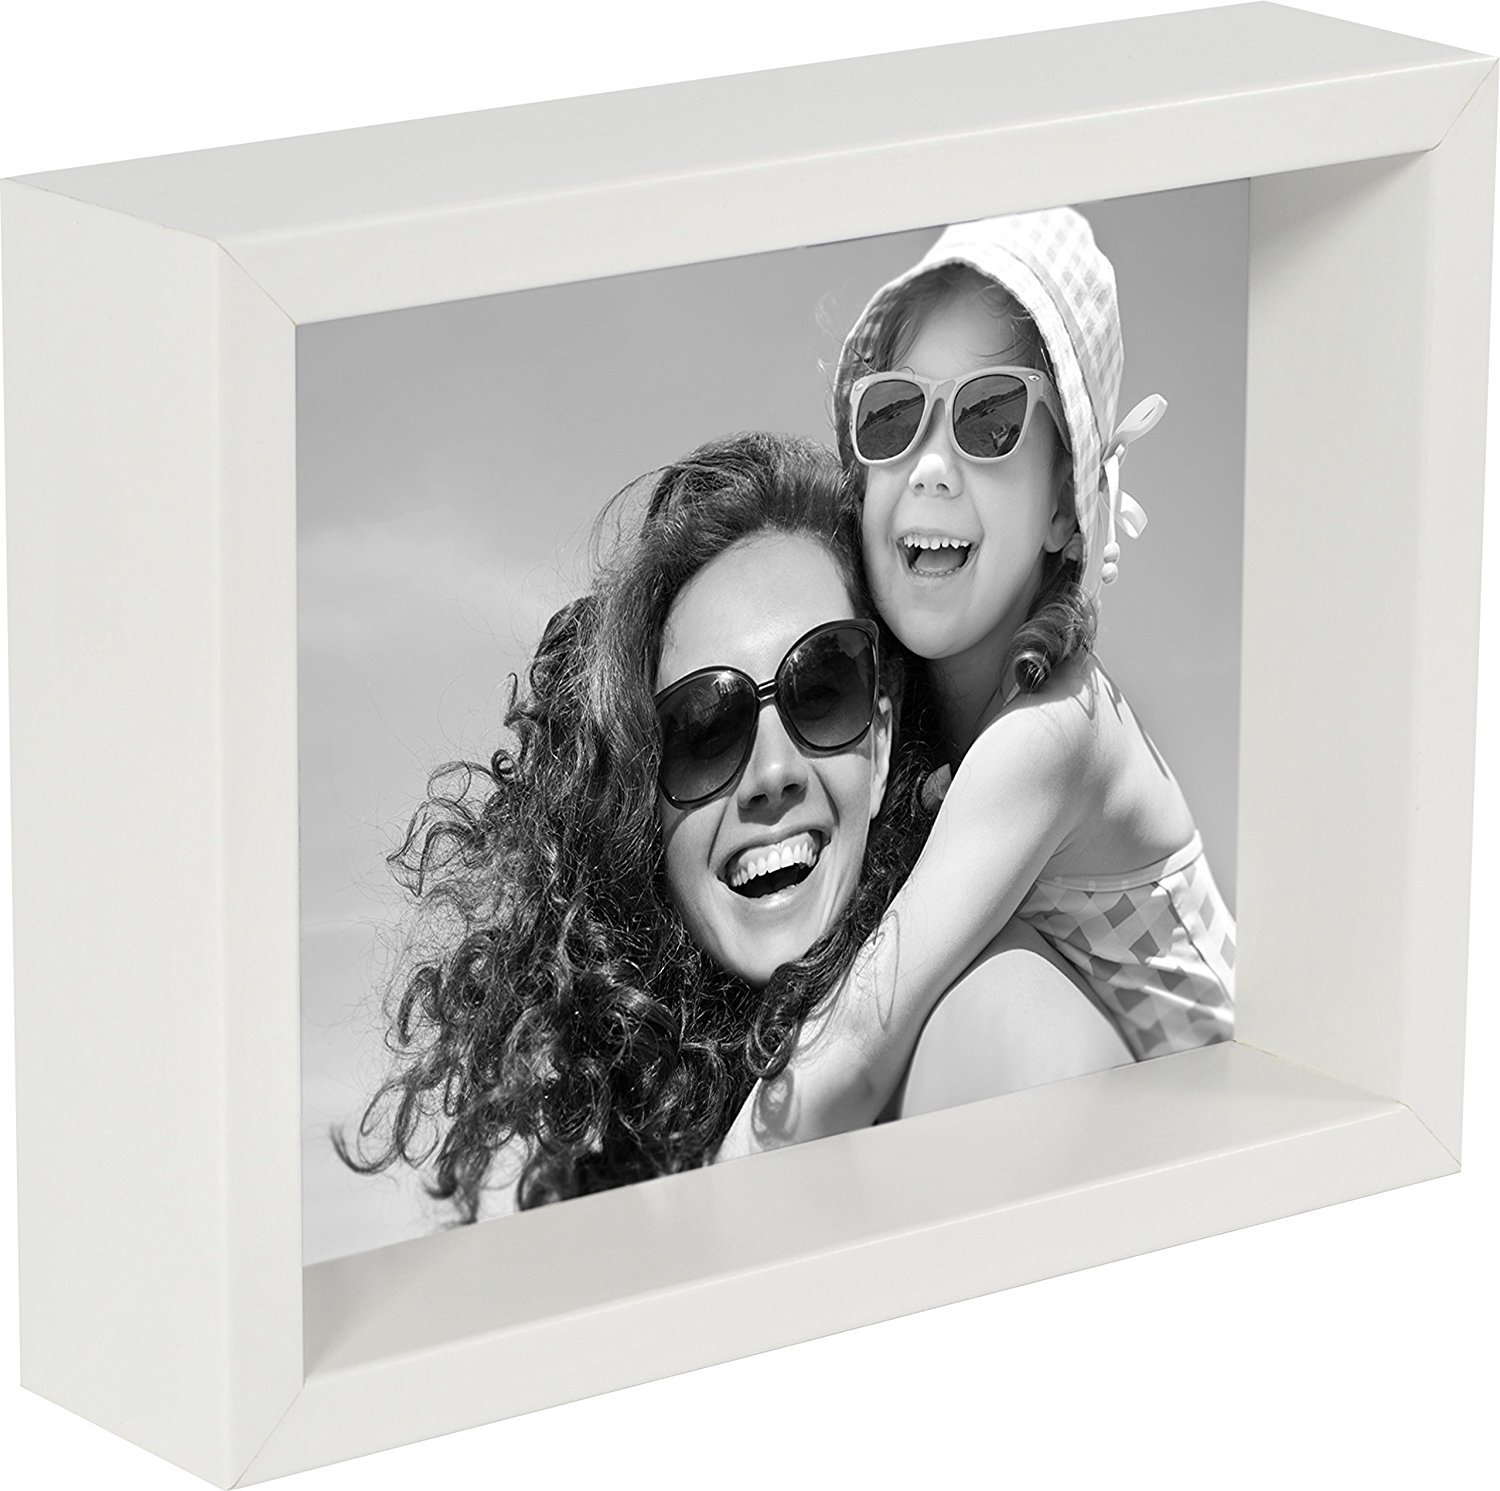 4 x 6-Inch Box Picture Photo Frame, White